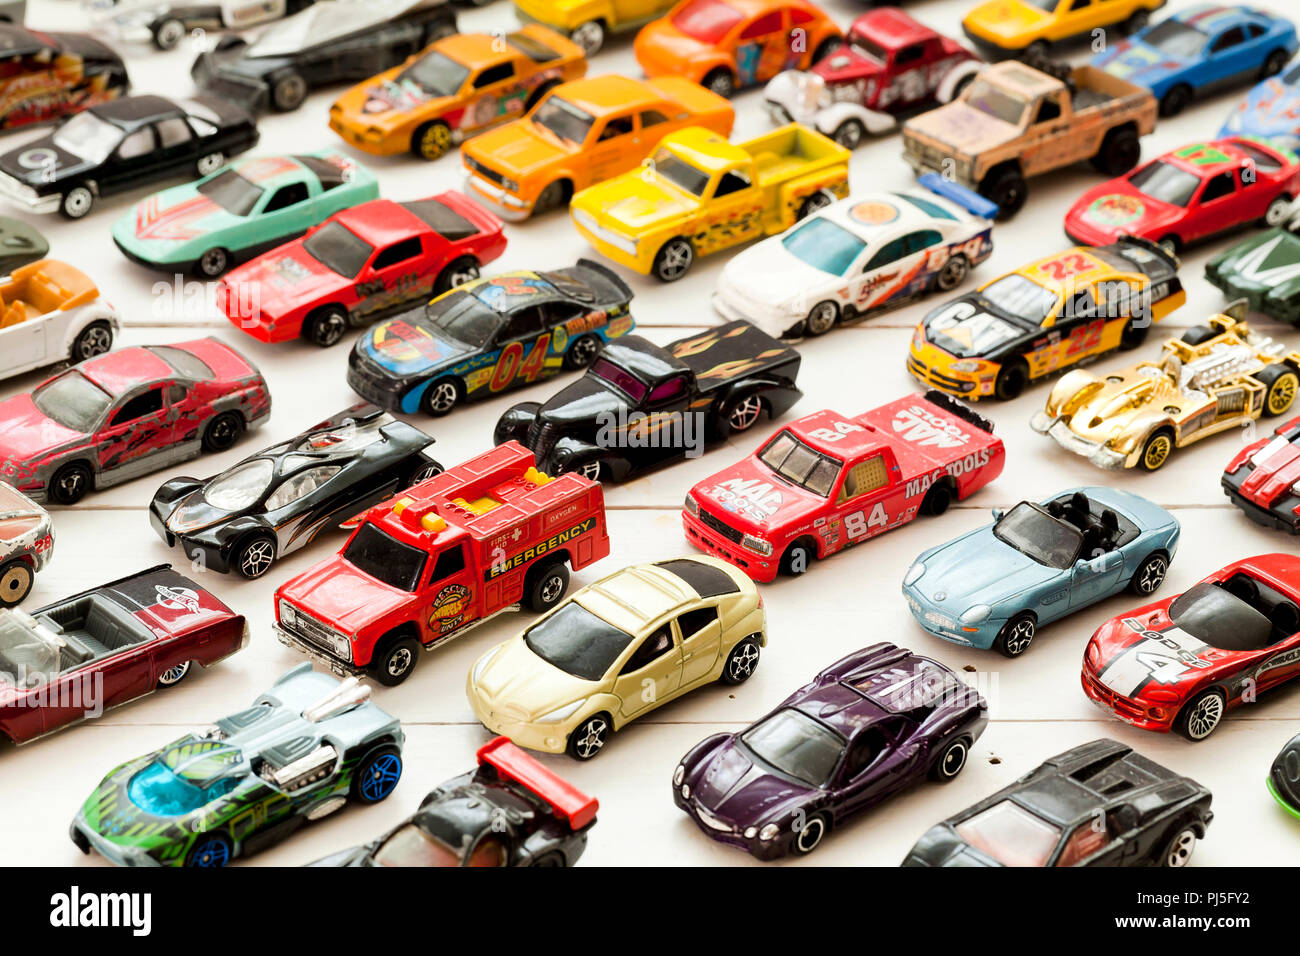 Vintage, used Hot Wheels collection on table - USA - Stock Image